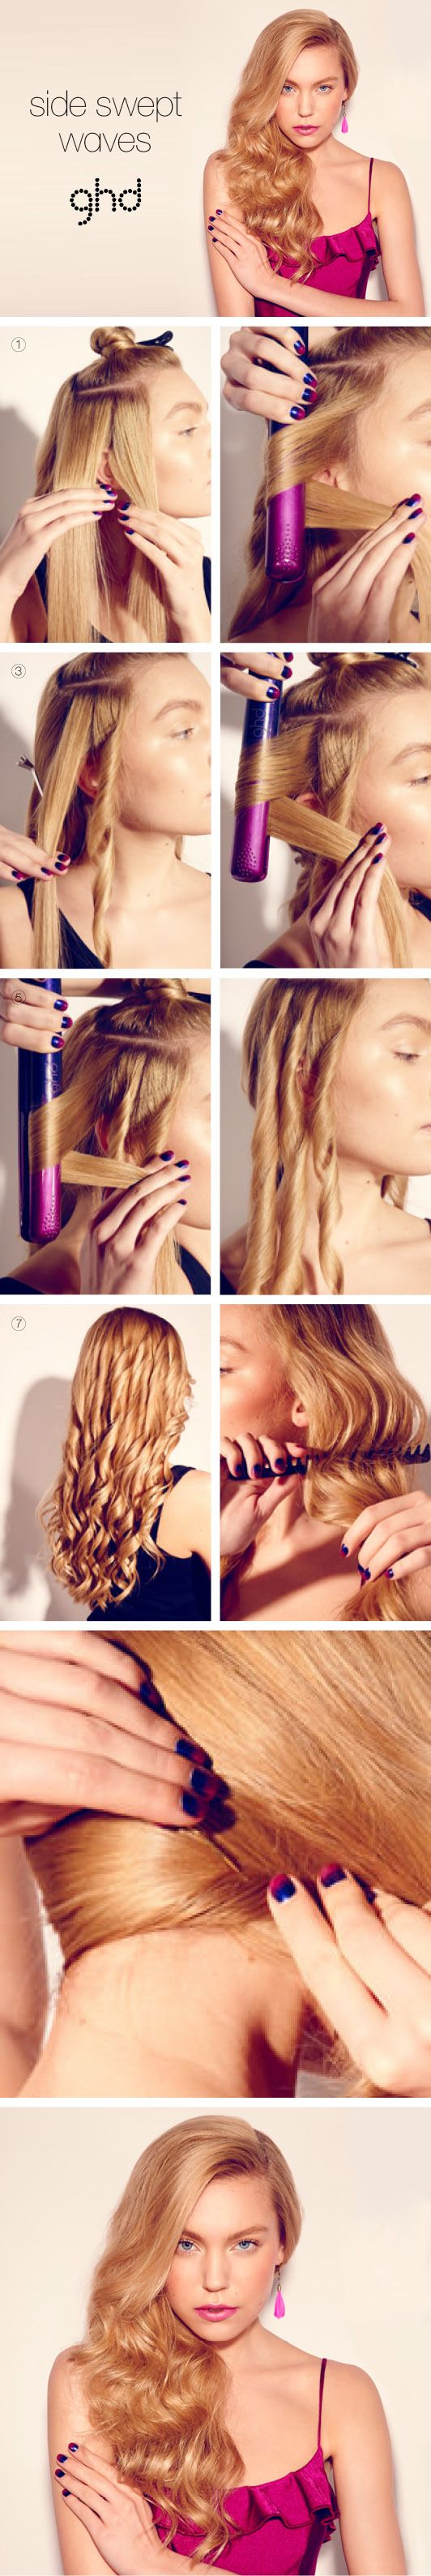 How to hairstyles side swept waves  GUIDA STEP-BY-STEP: SIDE SWEPT WAVES  TEMPO DI FESTE? Fai la tua ENTRATA trionfante con l'acconciatura ad ONDE LATERALI.